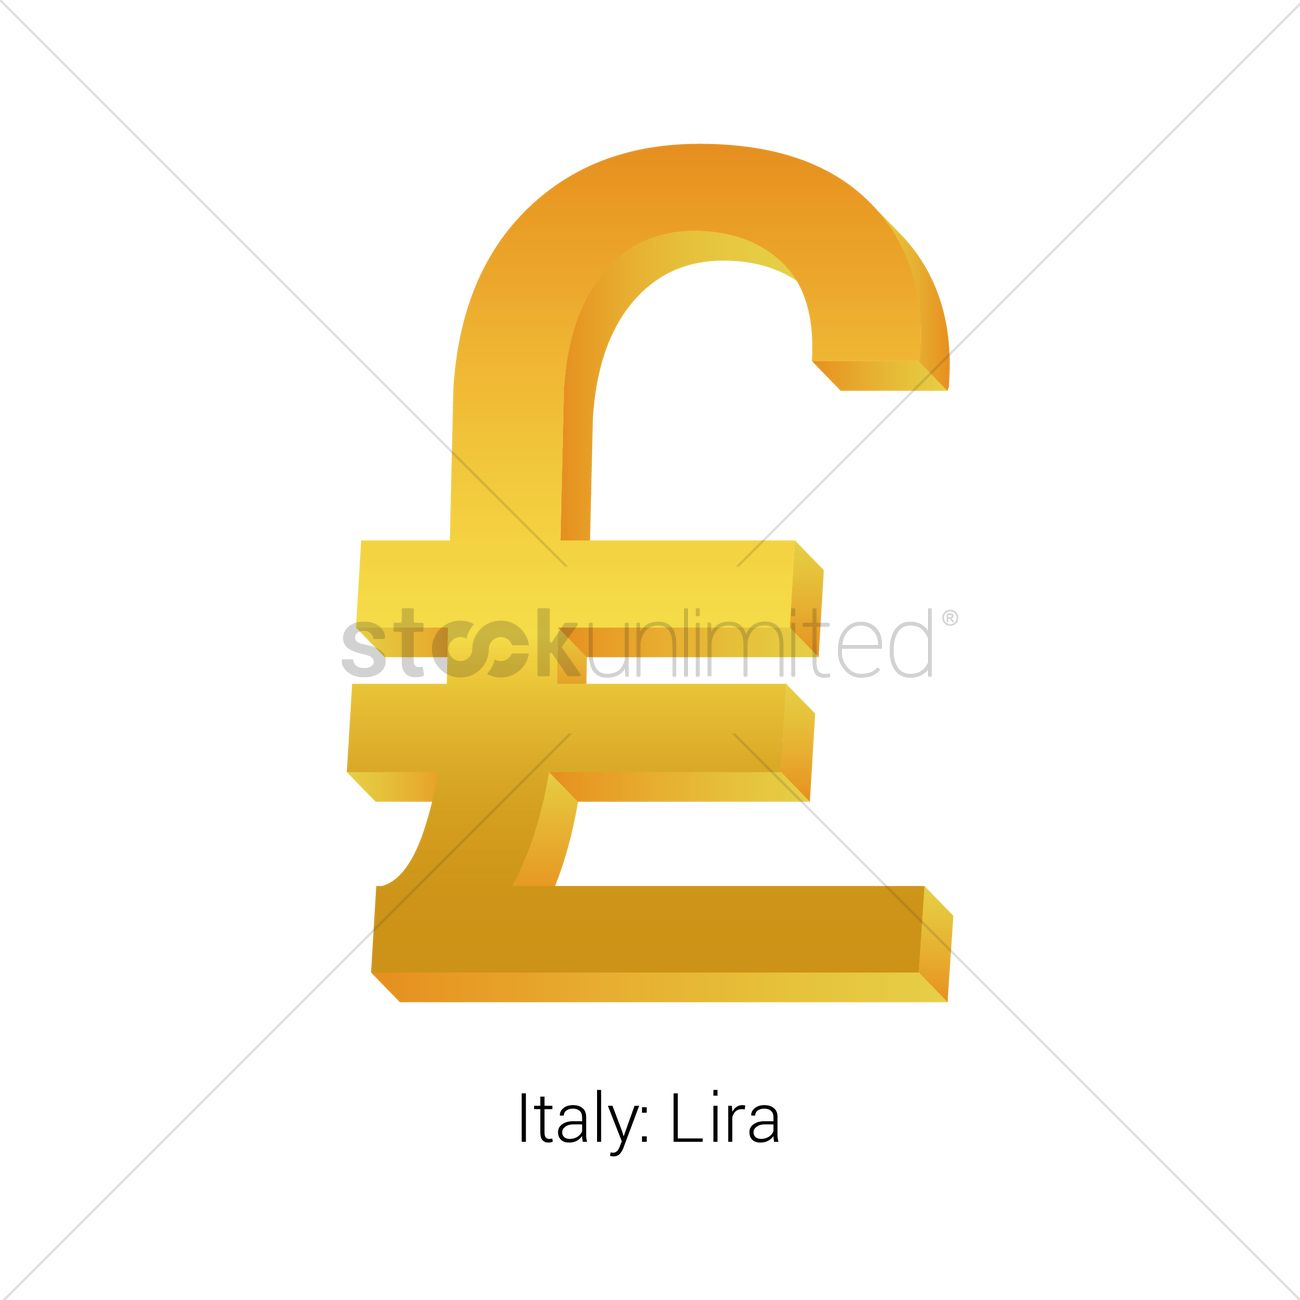 Lira Currency Symbol Vector Image 1821469 Stockunlimited